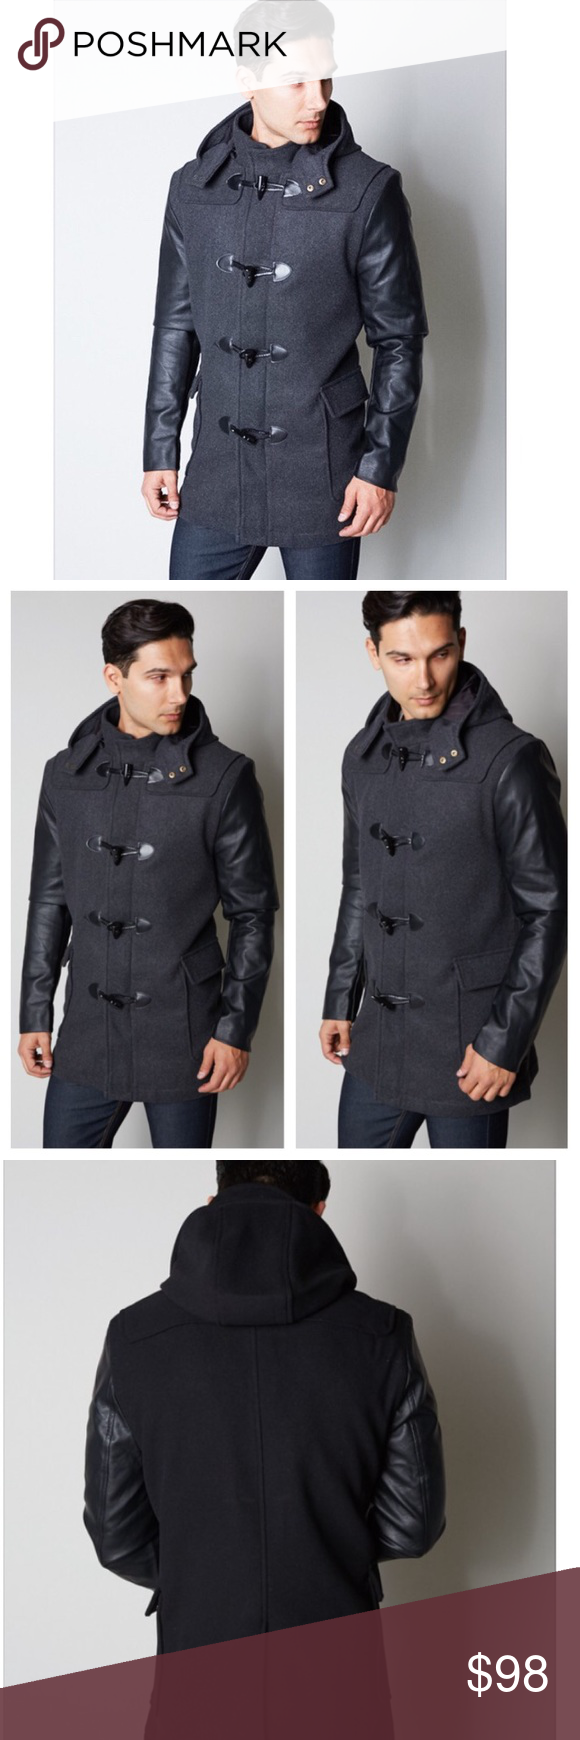 """Men's Charcoal Toggle Wool Coat Men's urban style slim-fit toggle coat in charcoal. Fully lined with removable hood. Polyurethane material sleeve for sexy leather look. 95% polyester, 5% wool. True to sizes. Meant to fit slim.  ** Third picture shows back style.  * Before asking, please note whatever sizes are listed below are all I currently have in stock.   ▫️Add to Bundle"""" to add more items in my closet or """"Buy"""" to checkout here with your size.  ↓Follow me on Instagram ↓…"""